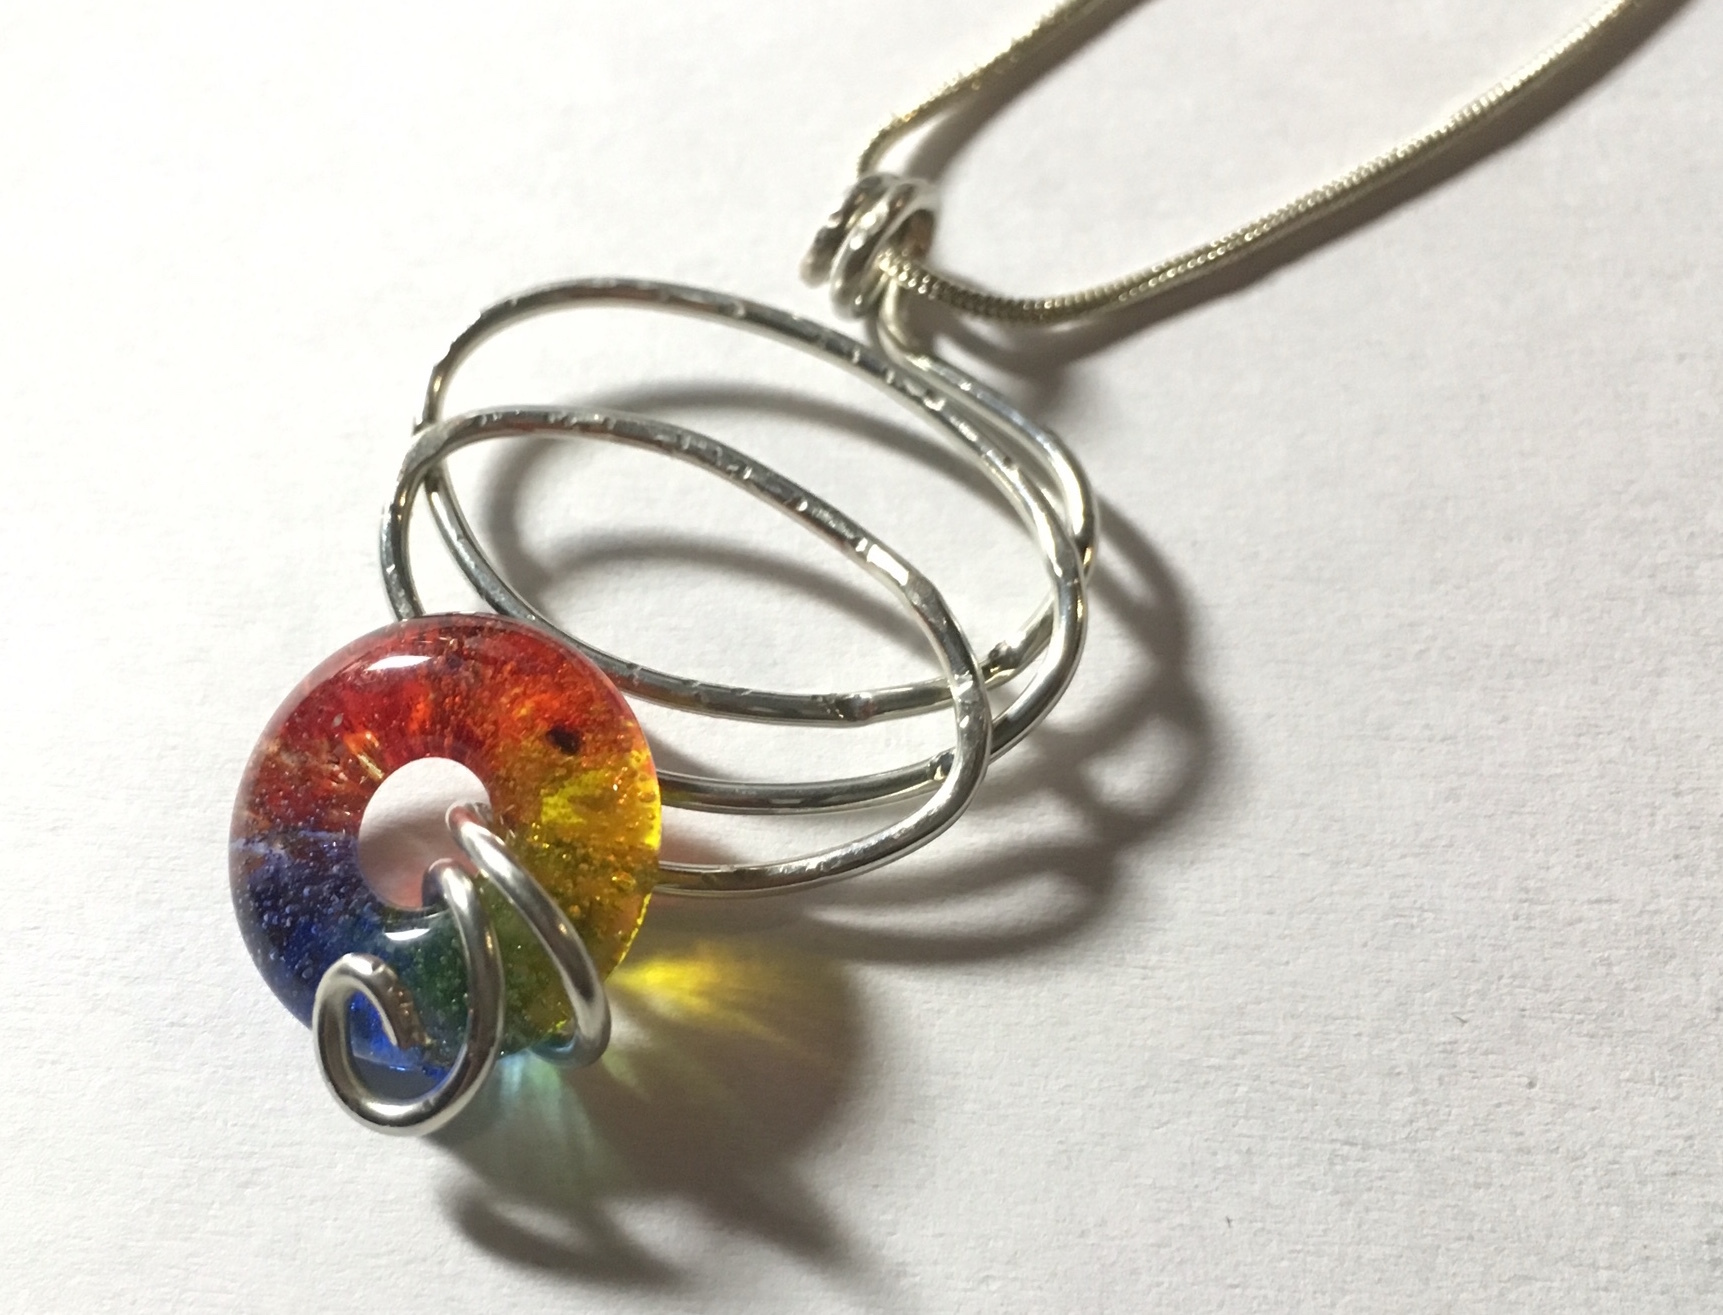 unique jewelry, glass jewelry, lgbt jewelry, gift for her,handmade glass, rainbow glass, rainbow jewelry, pride jewelry, lgbt wedding, stocking stuffer